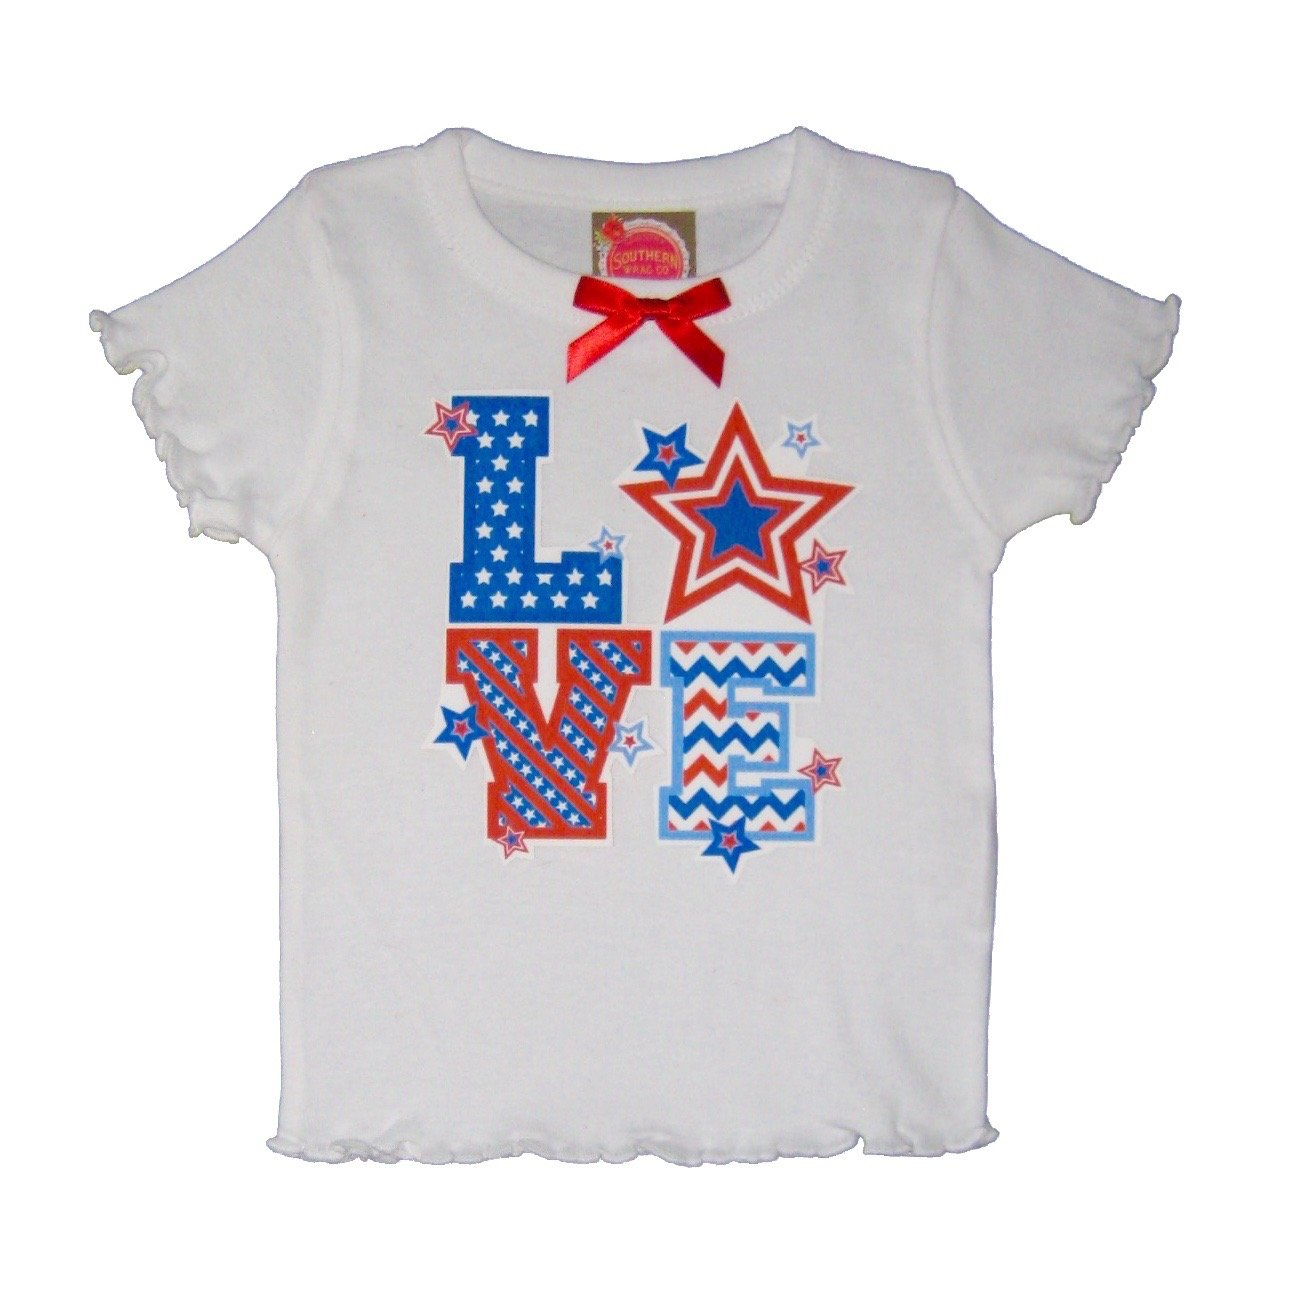 Southern Wrag Company Little Girls' 4th Of July Top Love Box (2T)